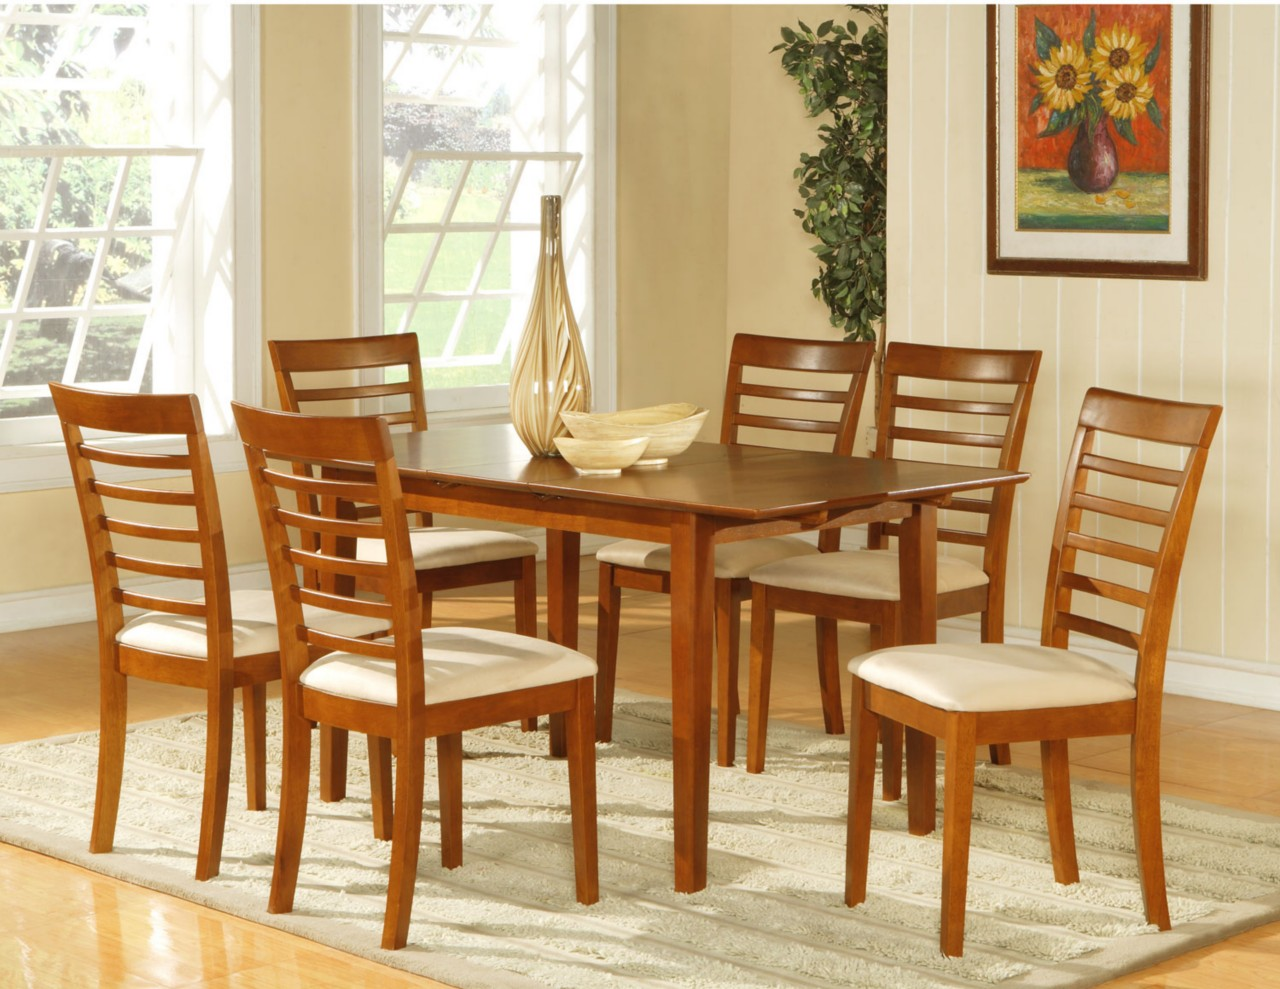 7pc dining room dinette set table and 6 chairs brown ebay for Dining room table and chair sets